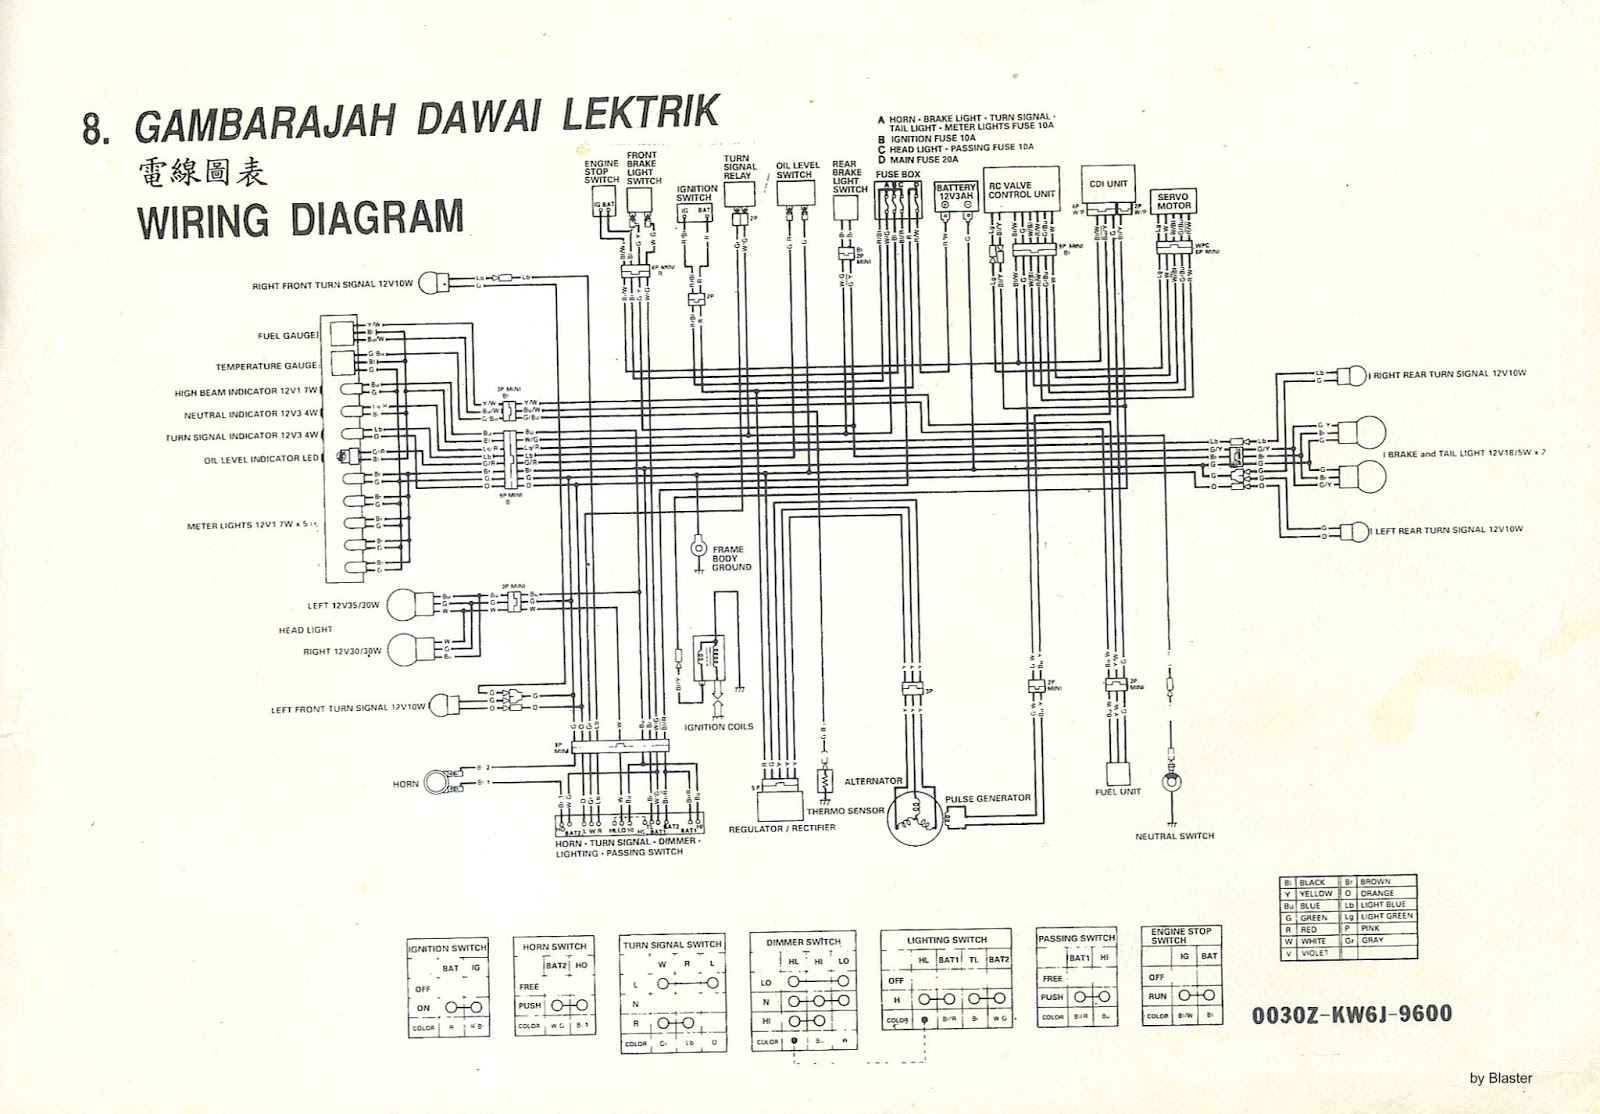 hight resolution of wiring diagram nsr 150 sp versi hitam putih